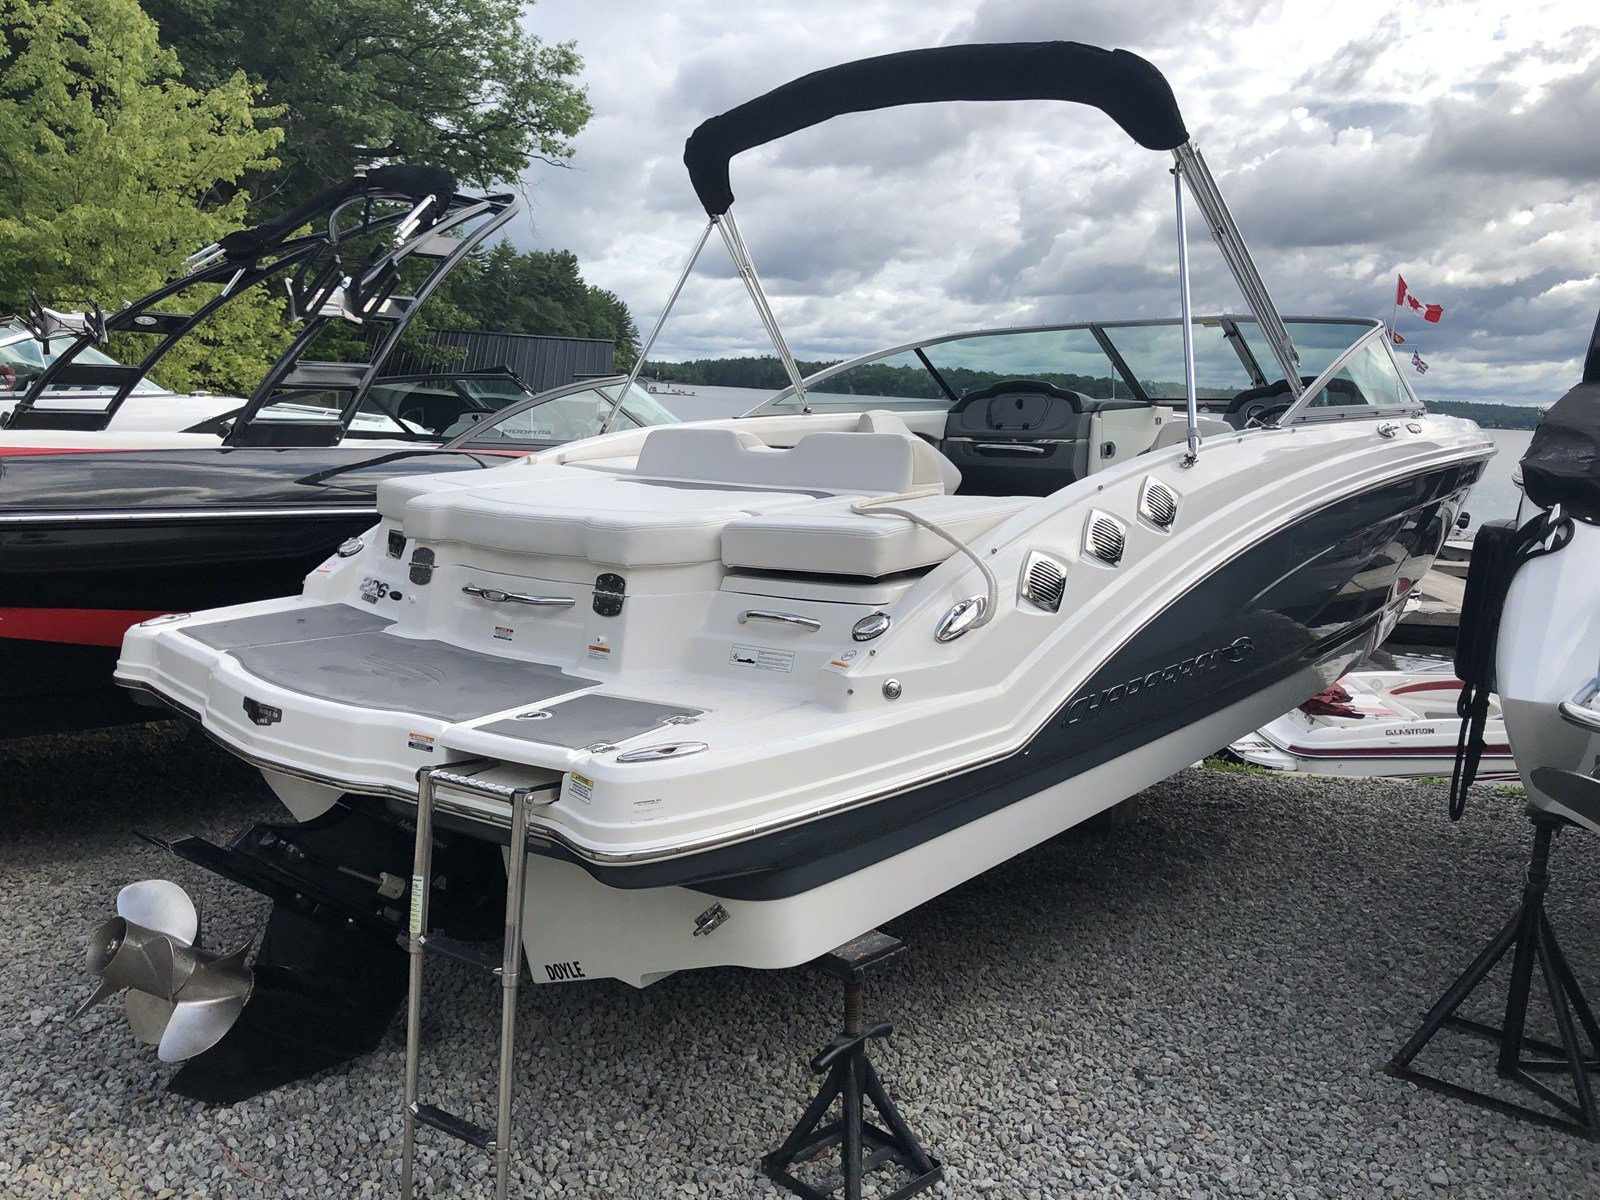 Pre-Owned 2015 Chaparral 226 Elite VERY CLEAN - 1 OWNER